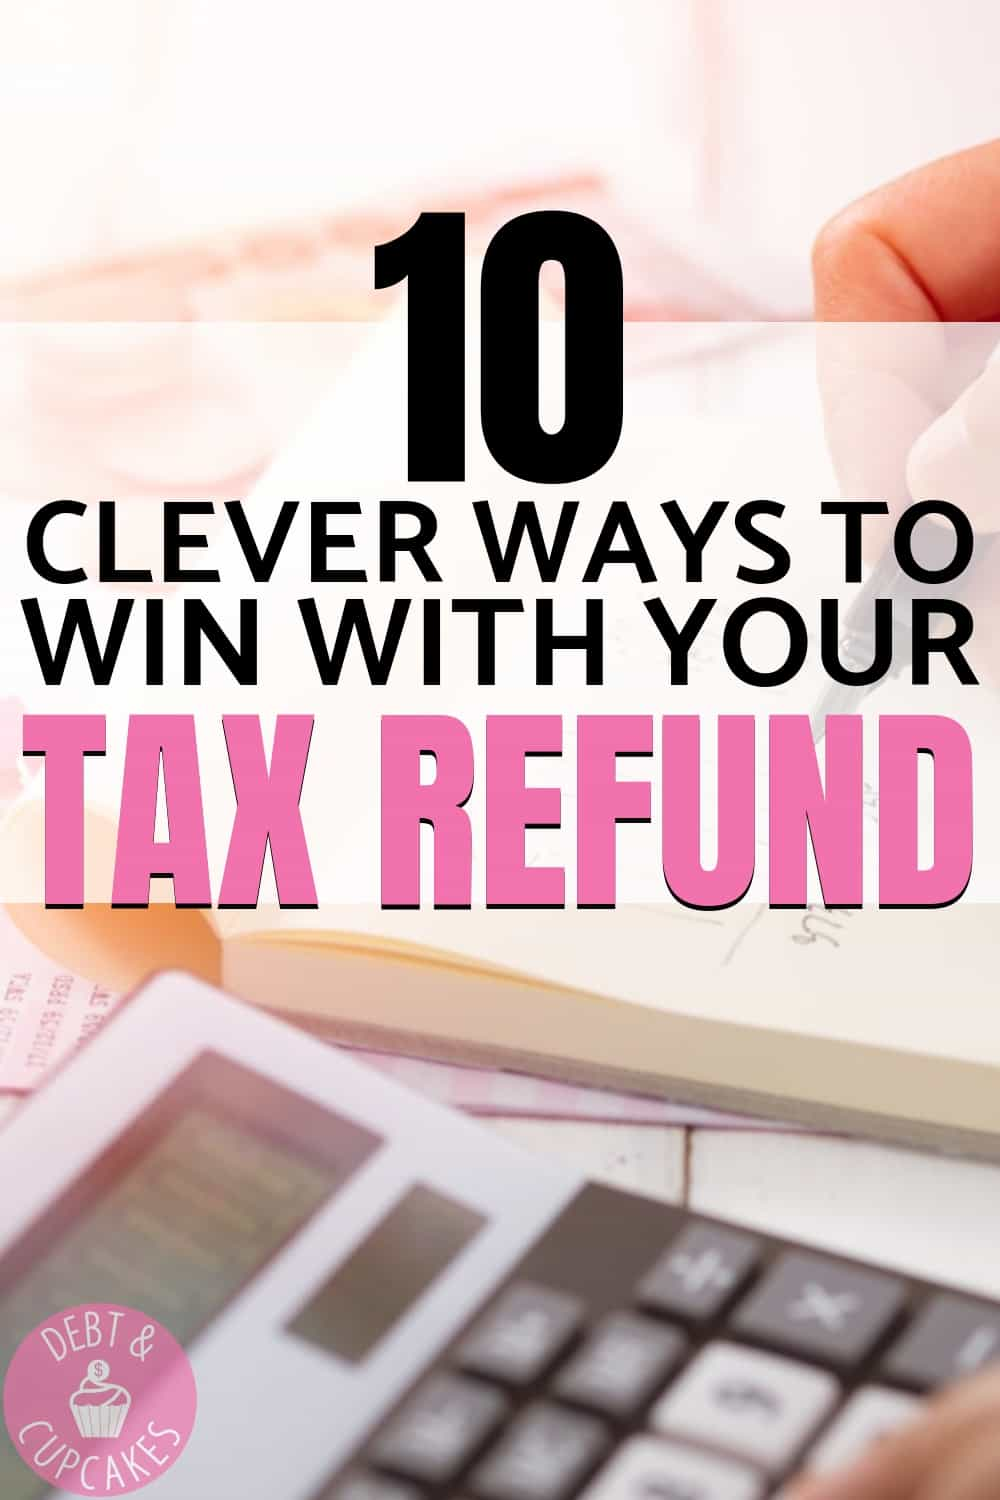 Using your tax refund to grow your wealth is easier said than done. Do you know how to best use your tax refund this year? These 10 tips will help ensure you don't waste your tax refund this year! Click to learn more!!